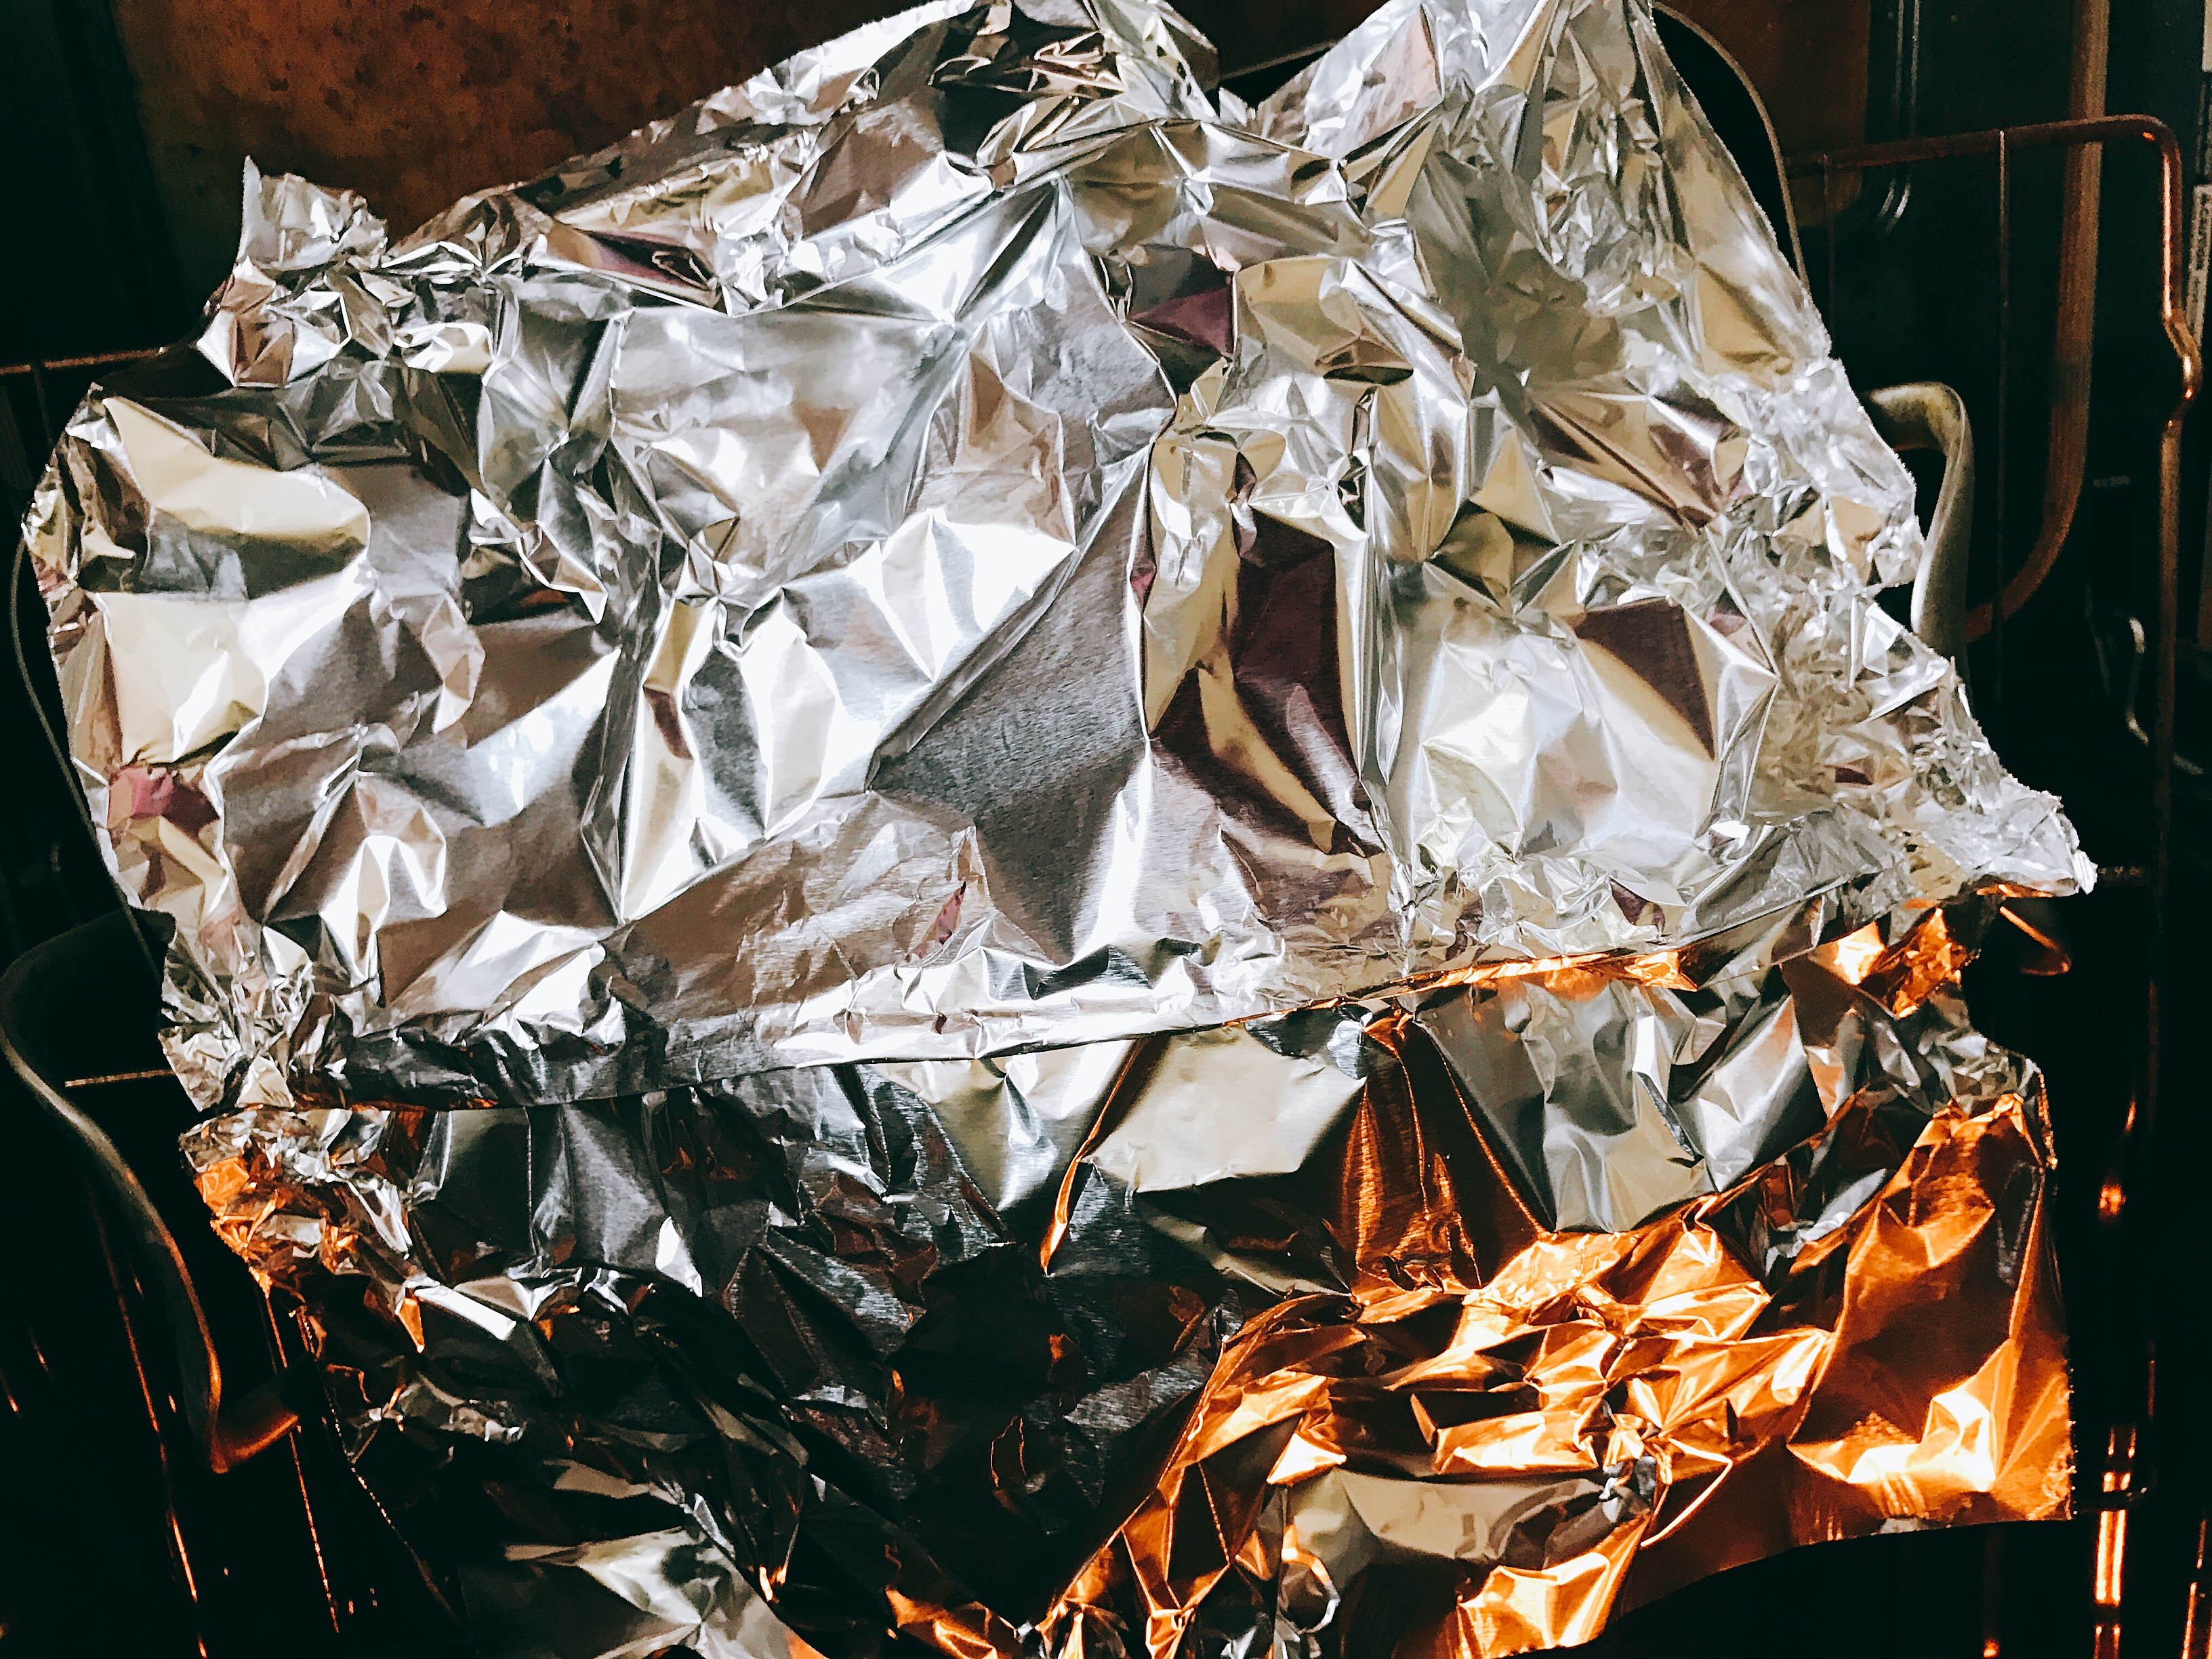 Tin Foil Tent - Some tips and tricks for roasting your Thanksgiving or holiday turkey! & Tips for a Perfectly Roasted Turkey - Three Olives Branch